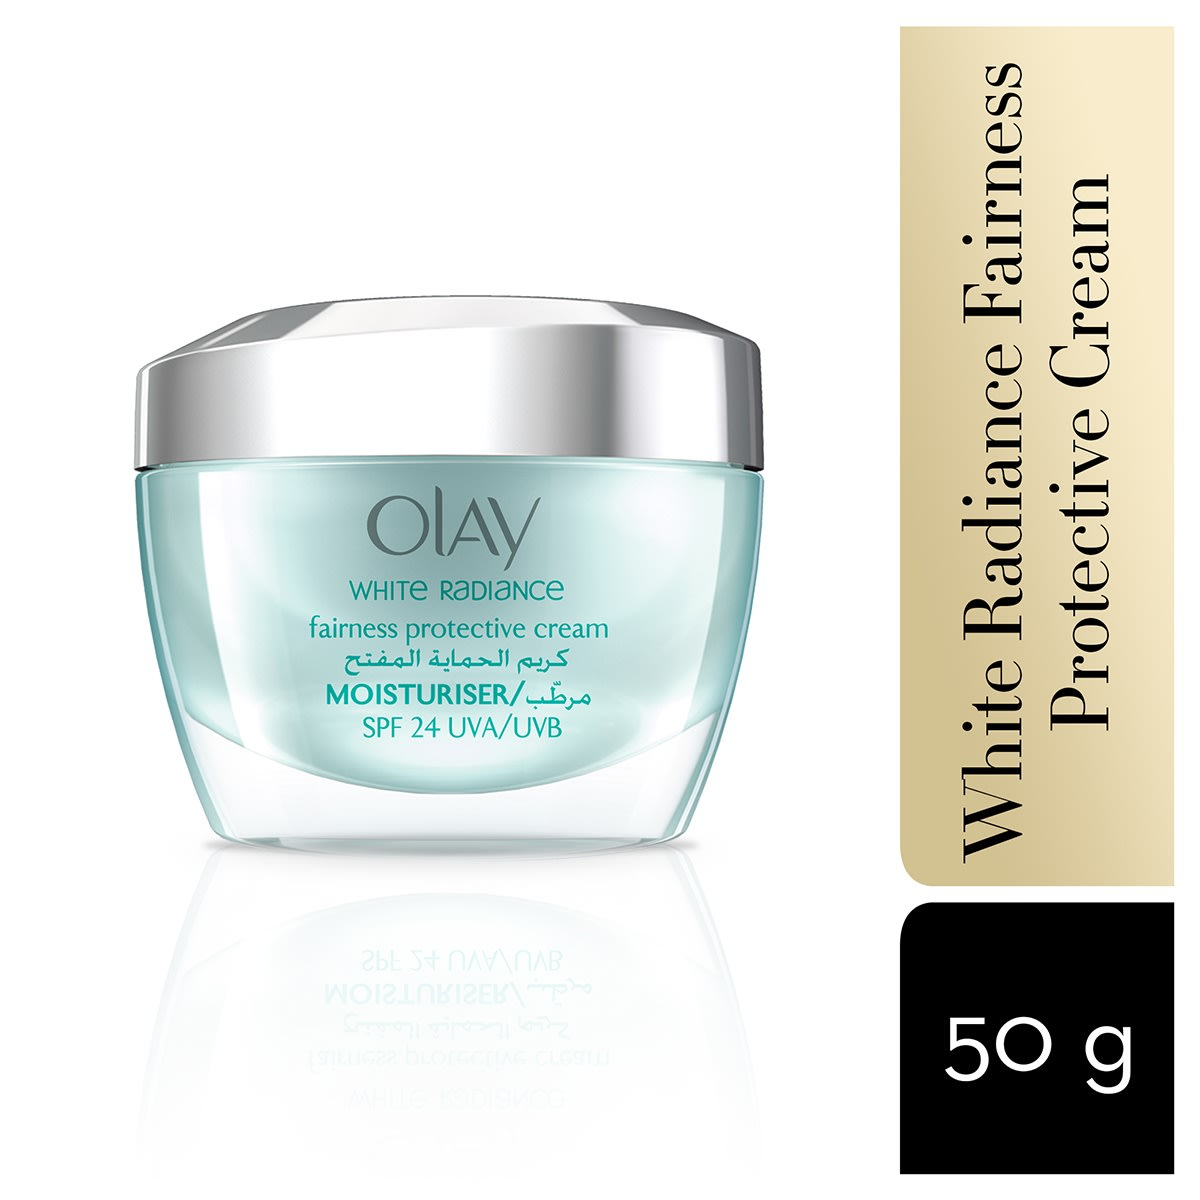 Olay White Radiance Fairness Protective Cream SPF 24 50 g